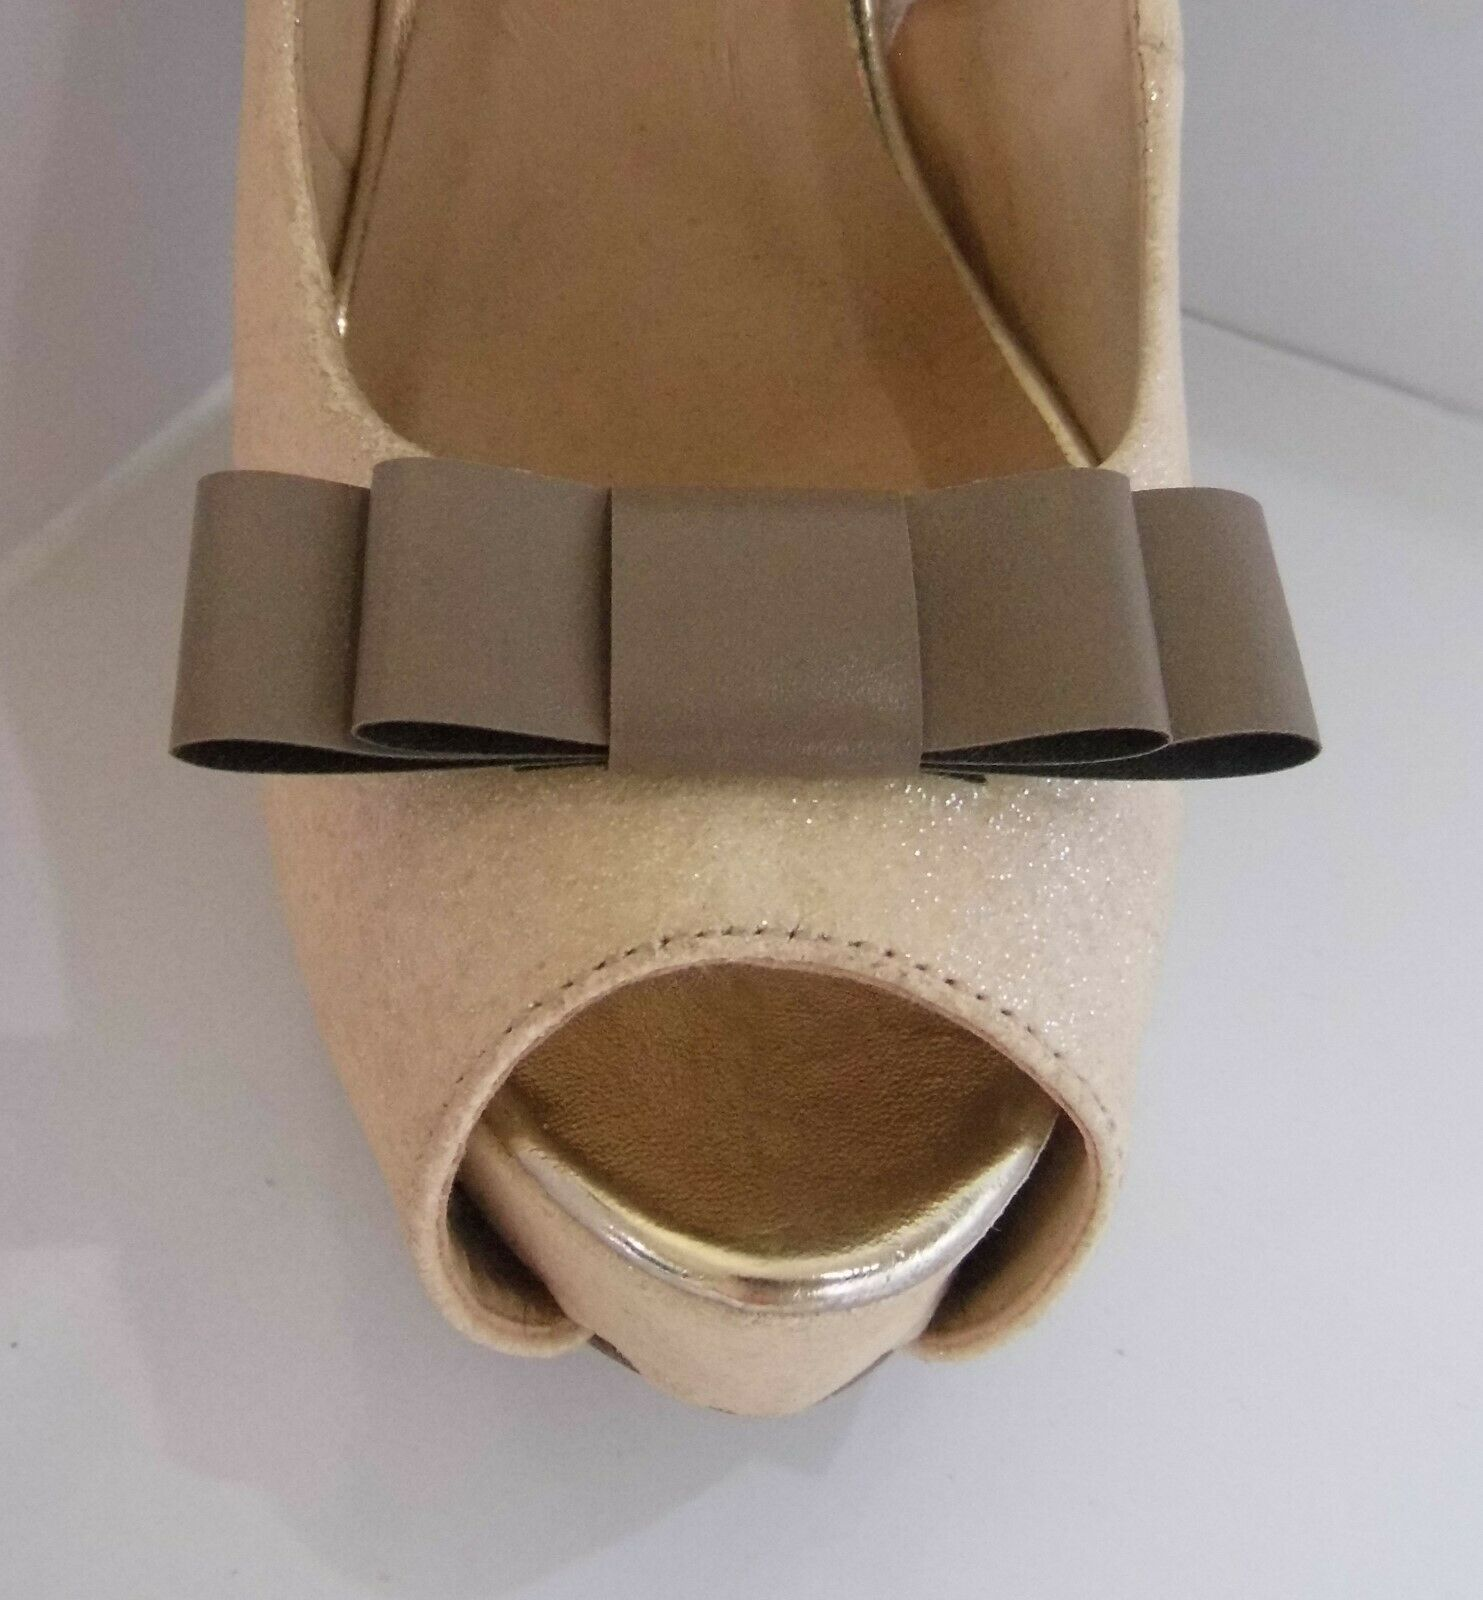 2 Tan Faux Patent Double Bow Clips for Shoes